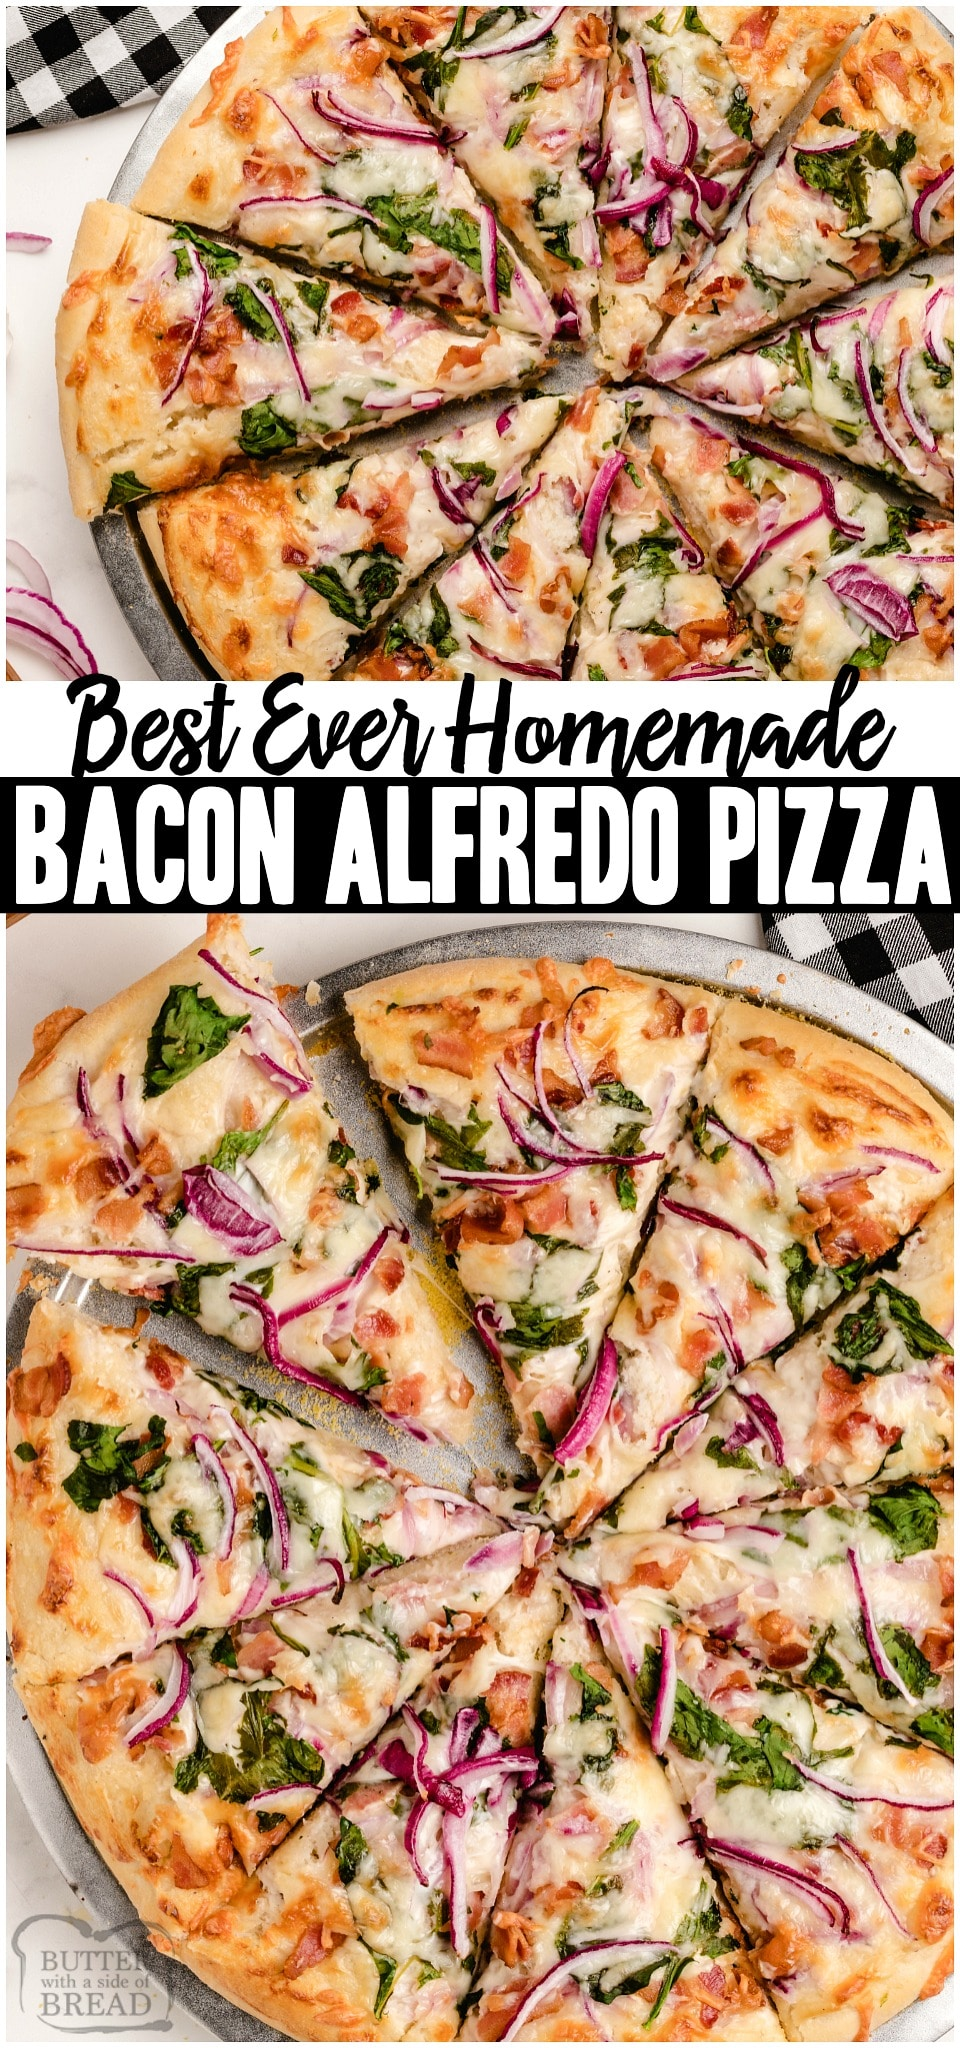 Bacon Alfredo Pizza baked fresh with cheesy Alfredo sauce topped with crispy bacon, cheese and some veggies! Easy recipe yields two Homemade Pizzas perfect for a fun weeknight dinner! #pizza #bacon #alfredo #homemade #recipe from BUTTER WITH A SIDE OF BREAD